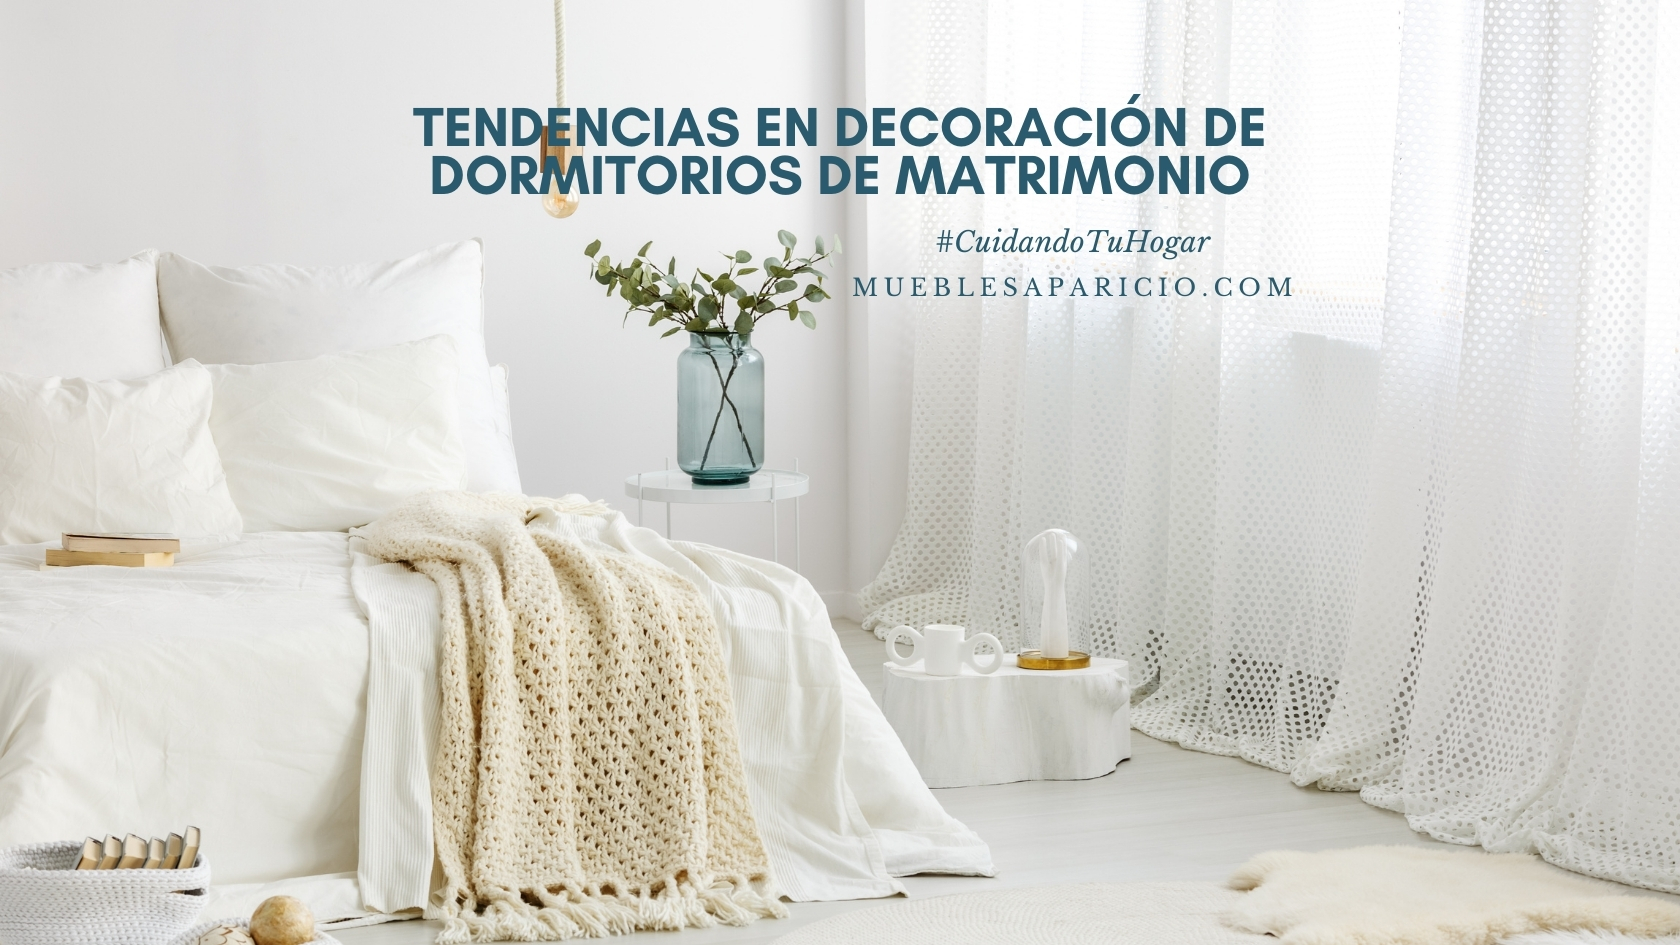 tendencias en decoración de dormitorios de matrimonio